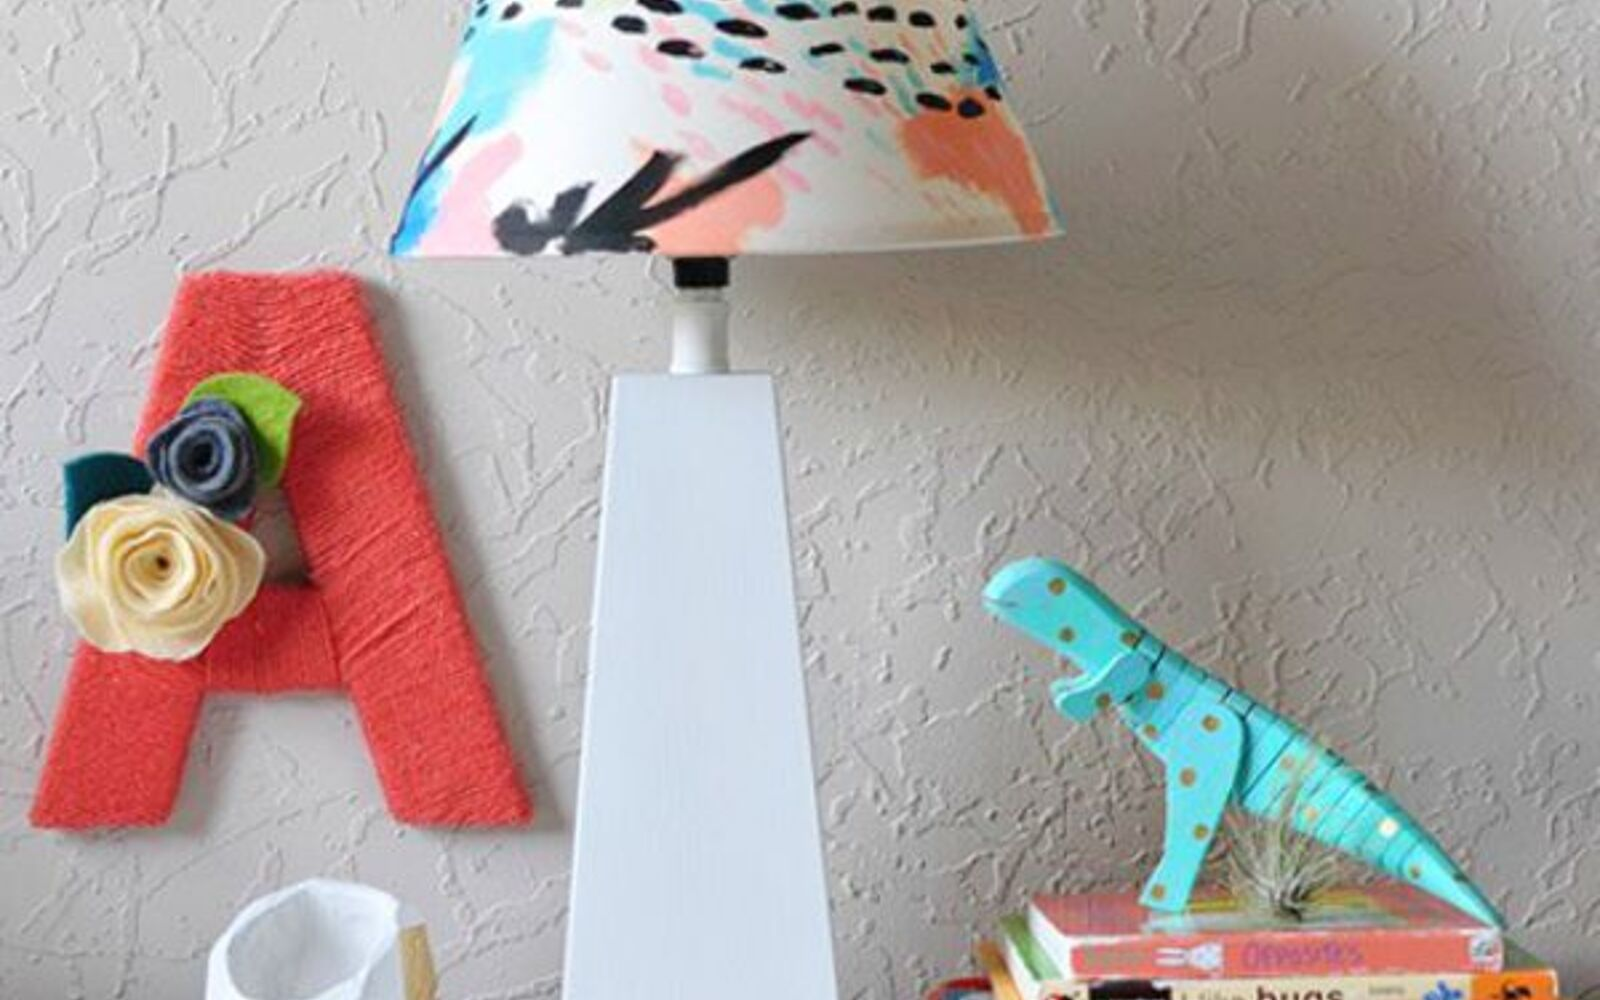 s 11 designer decor looks you can make on the cheap, crafts, home decor, Colorful Lampshade Land of Nod